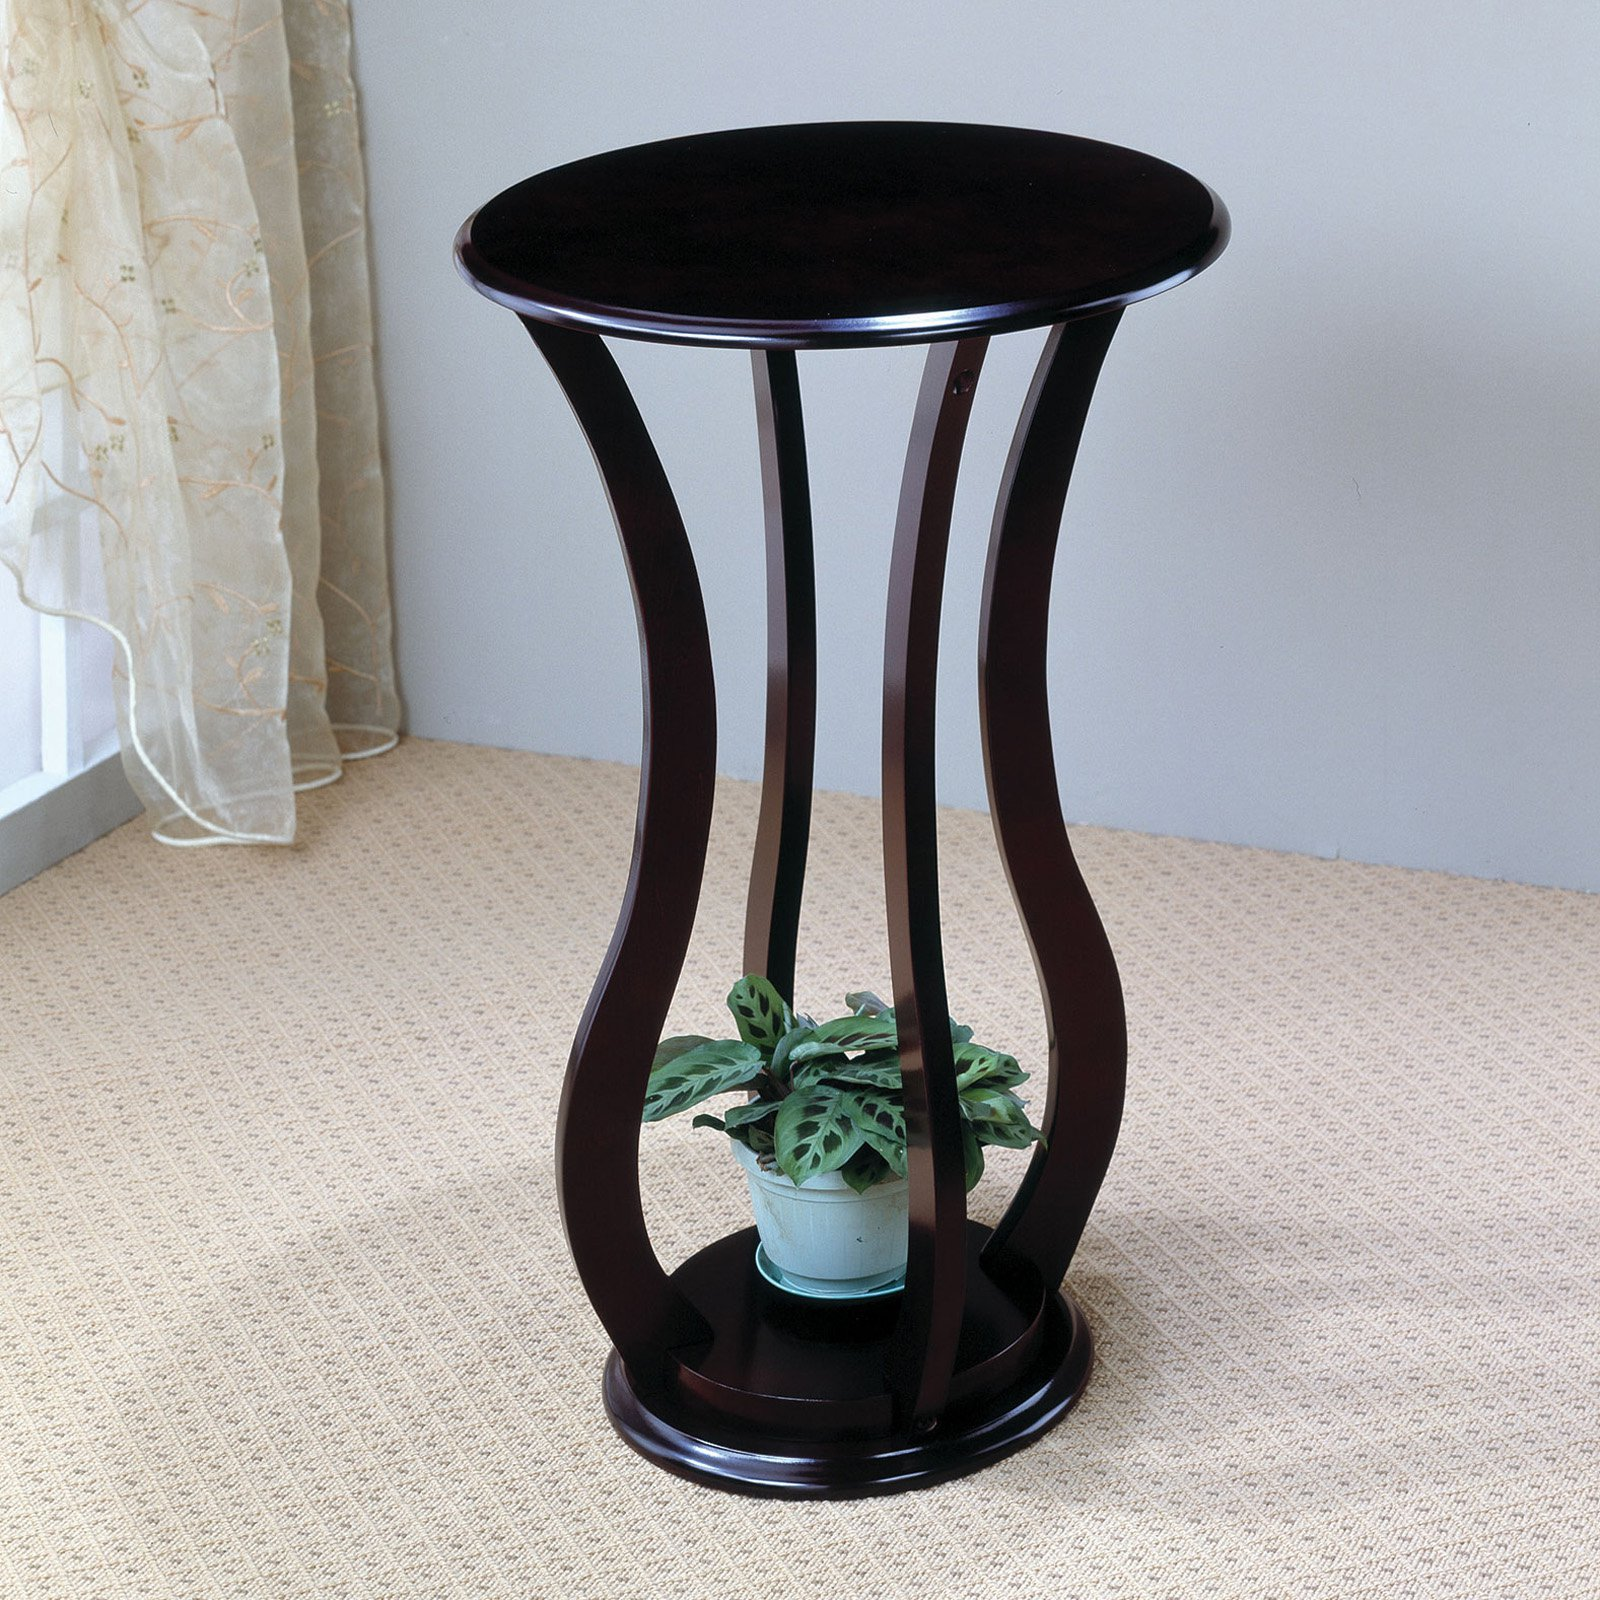 Coaster Round Accent Table with Curved Legs, Espresso Finish